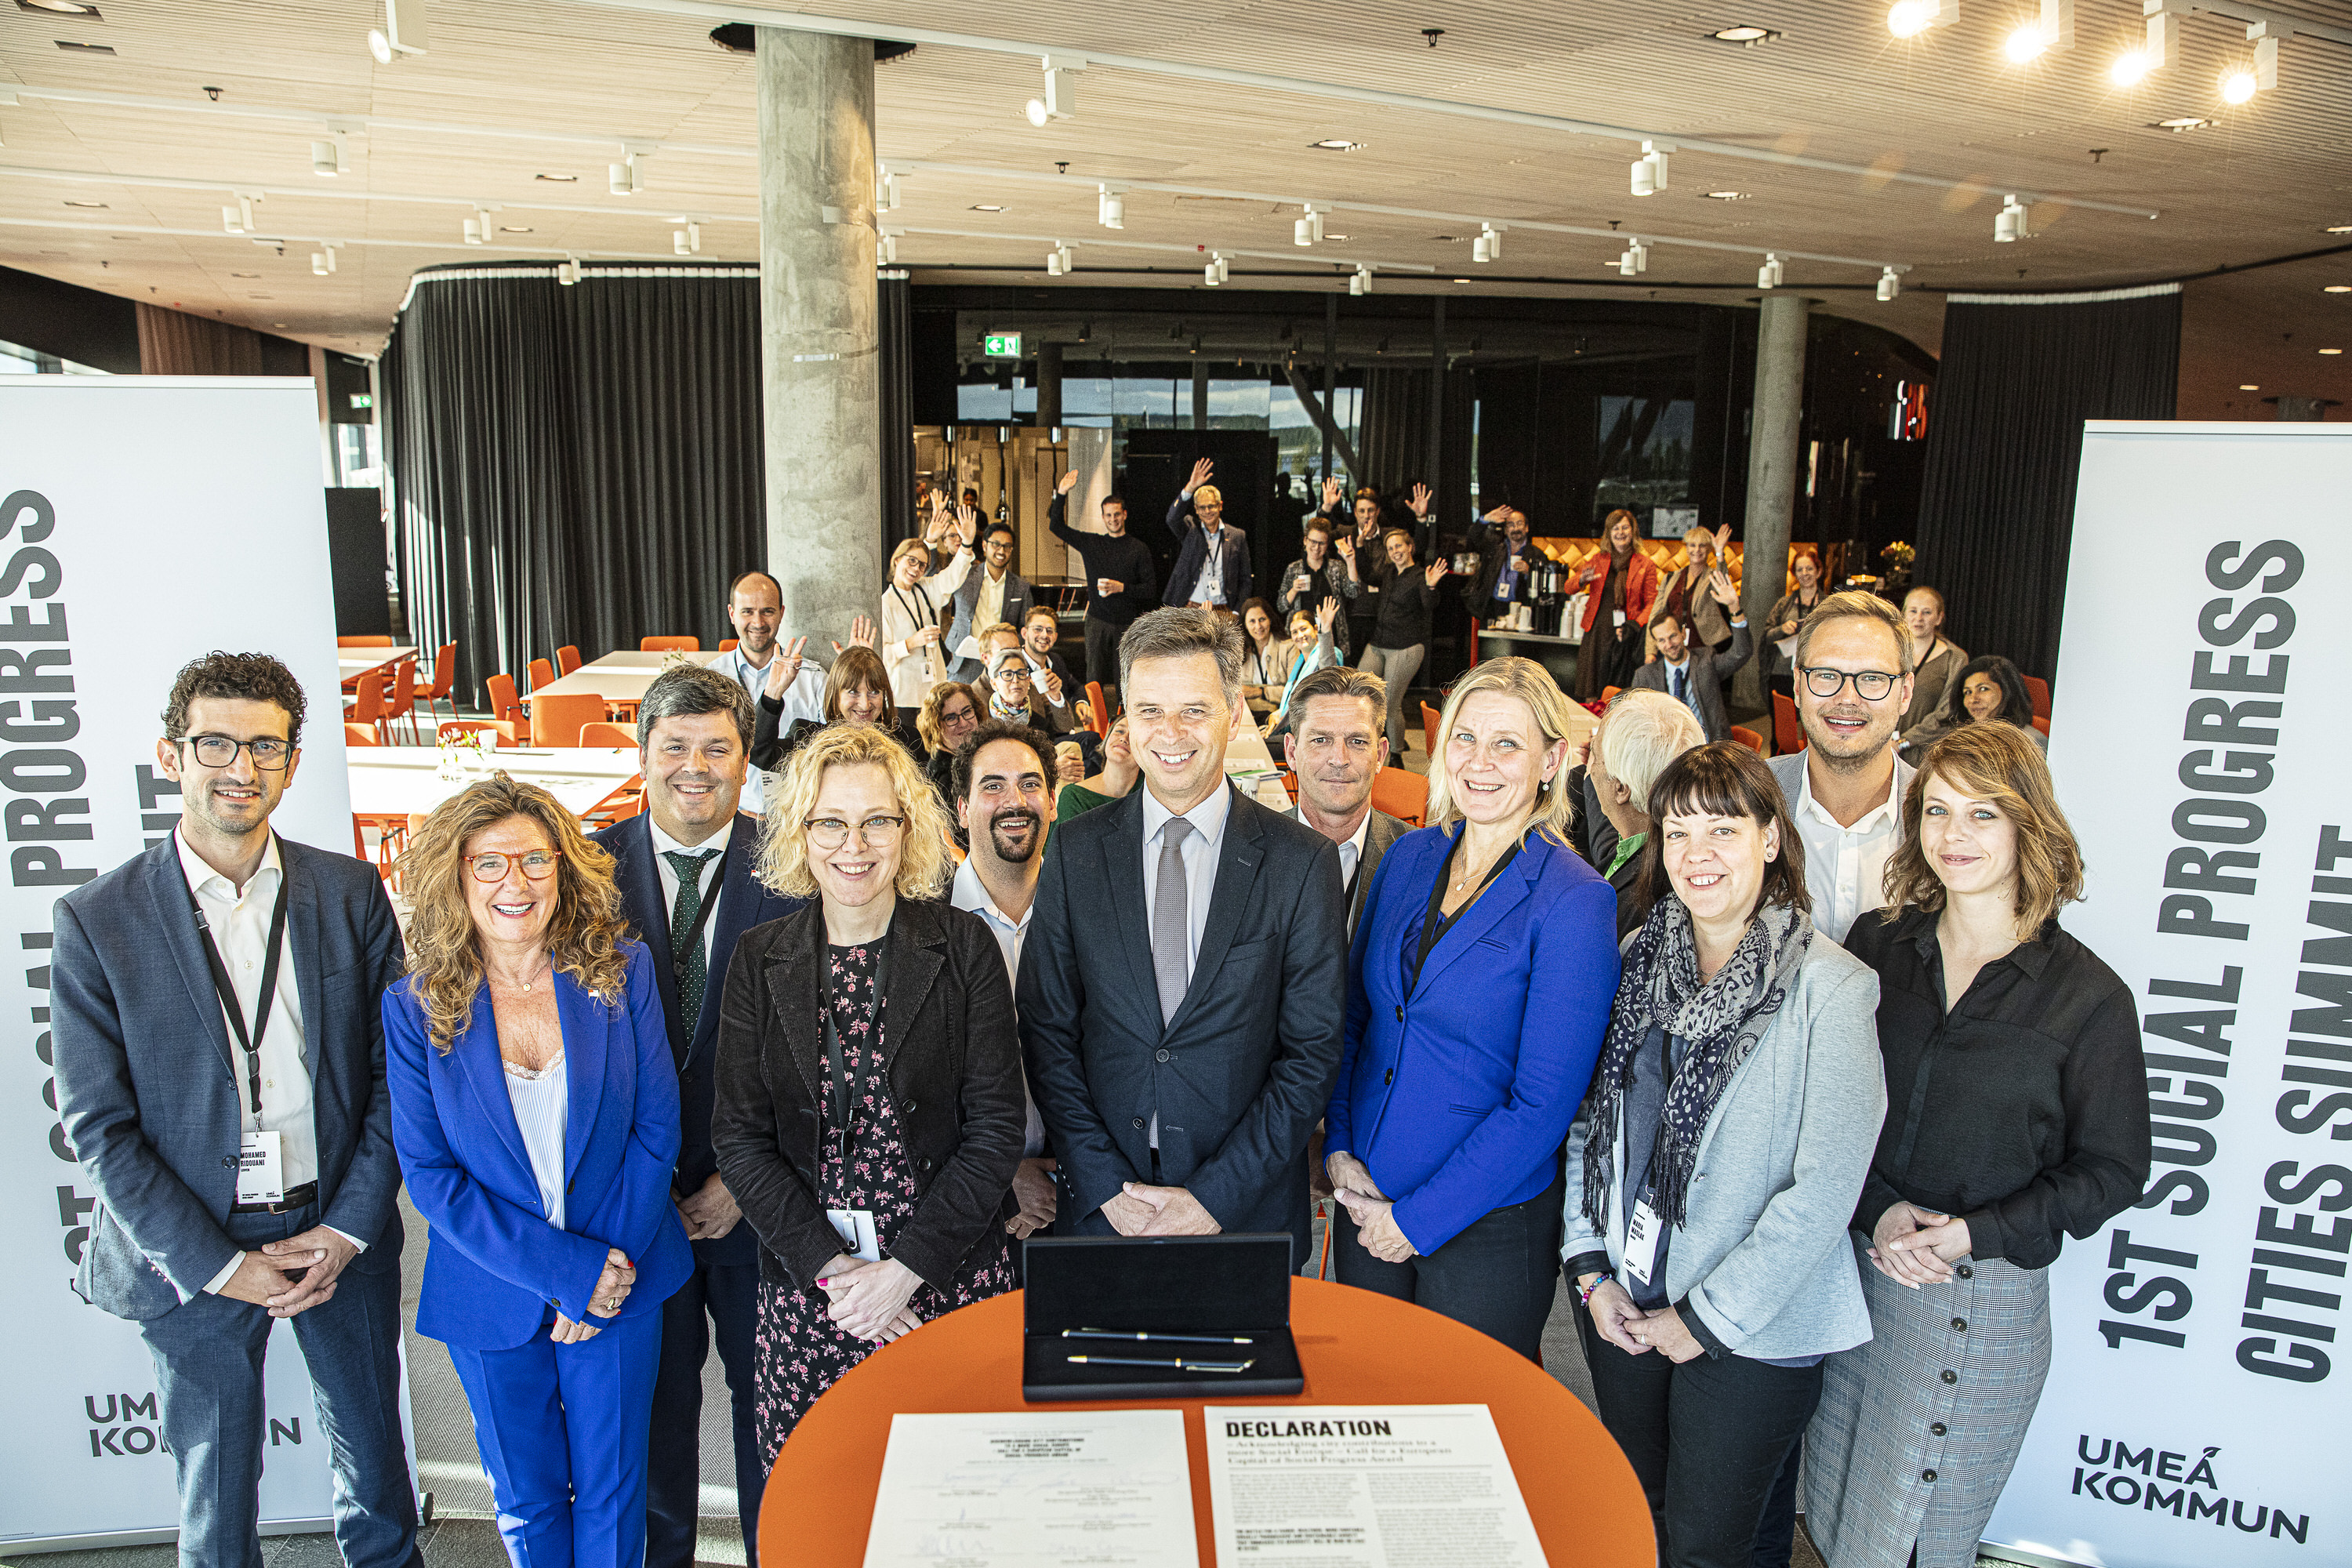 A group of people attending the first Social progress cities summit in Umeå